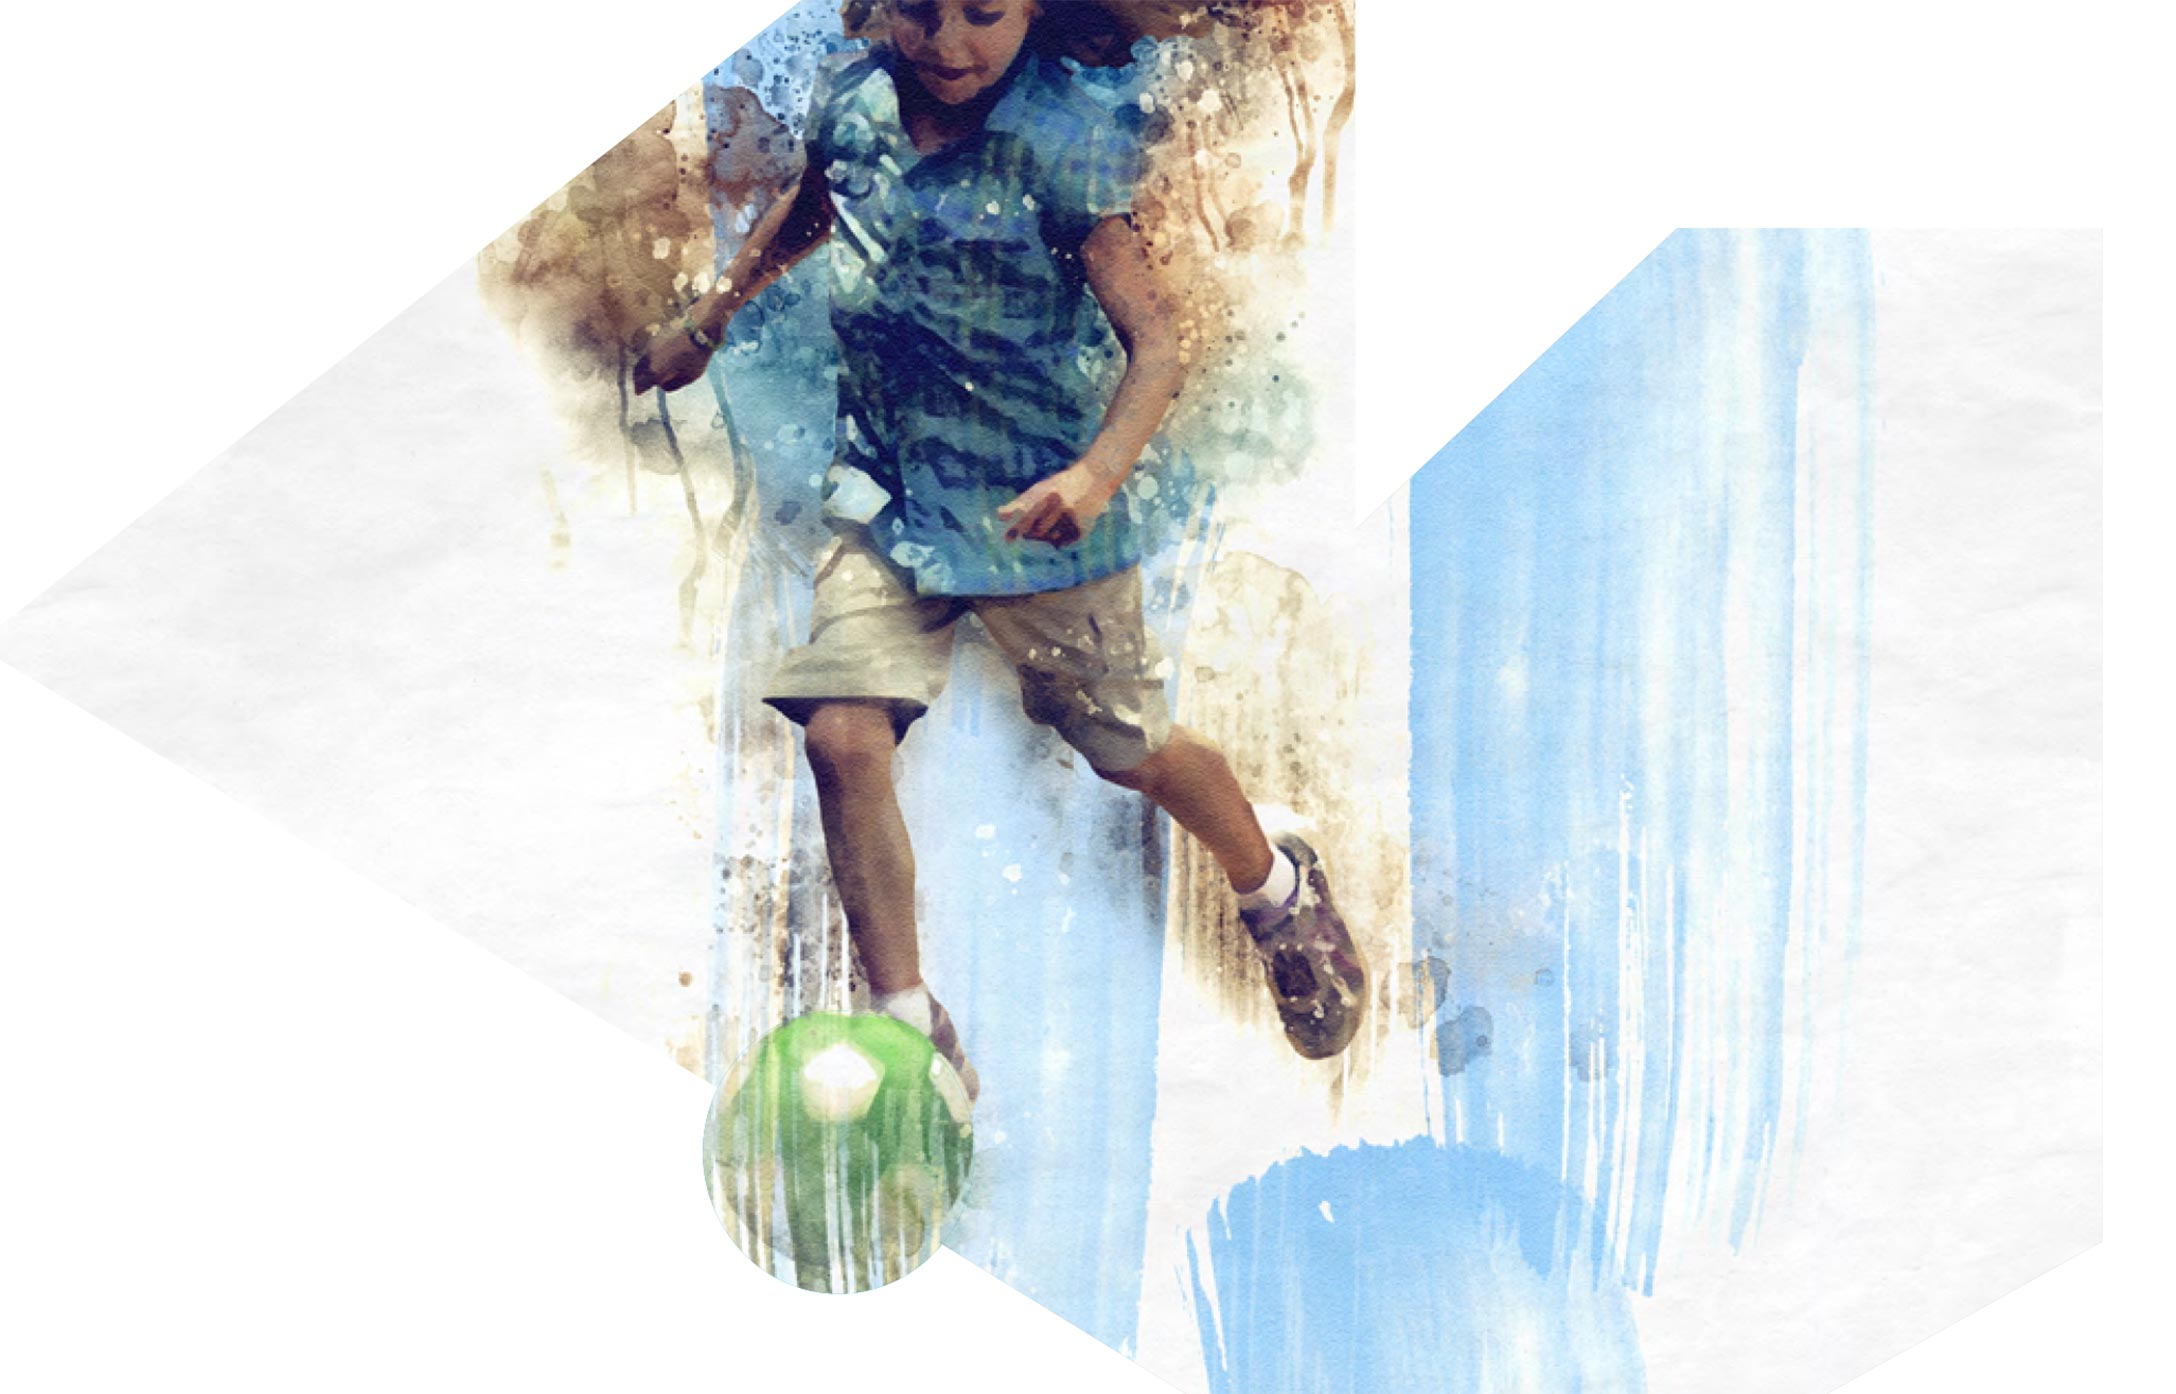 Watercolor art of girl playing soccer.